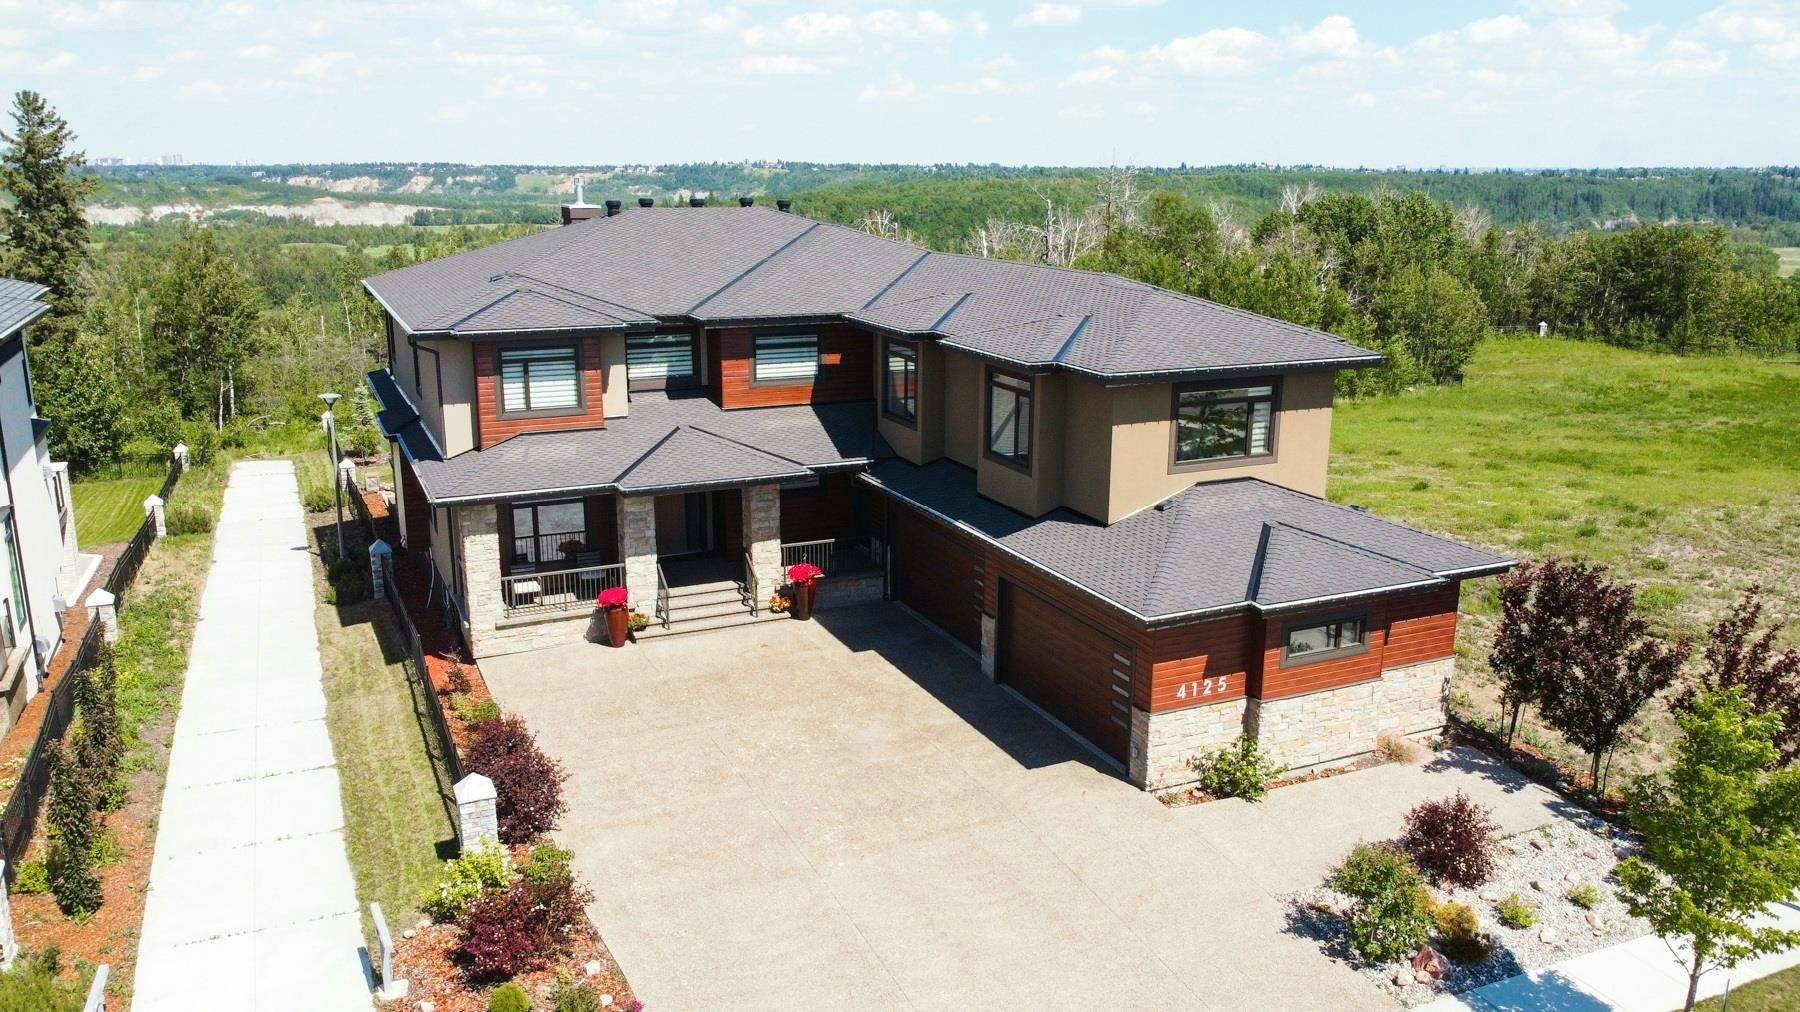 Main Photo: 4125 CAMERON HEIGHTS Point in Edmonton: Zone 20 House for sale : MLS®# E4251482